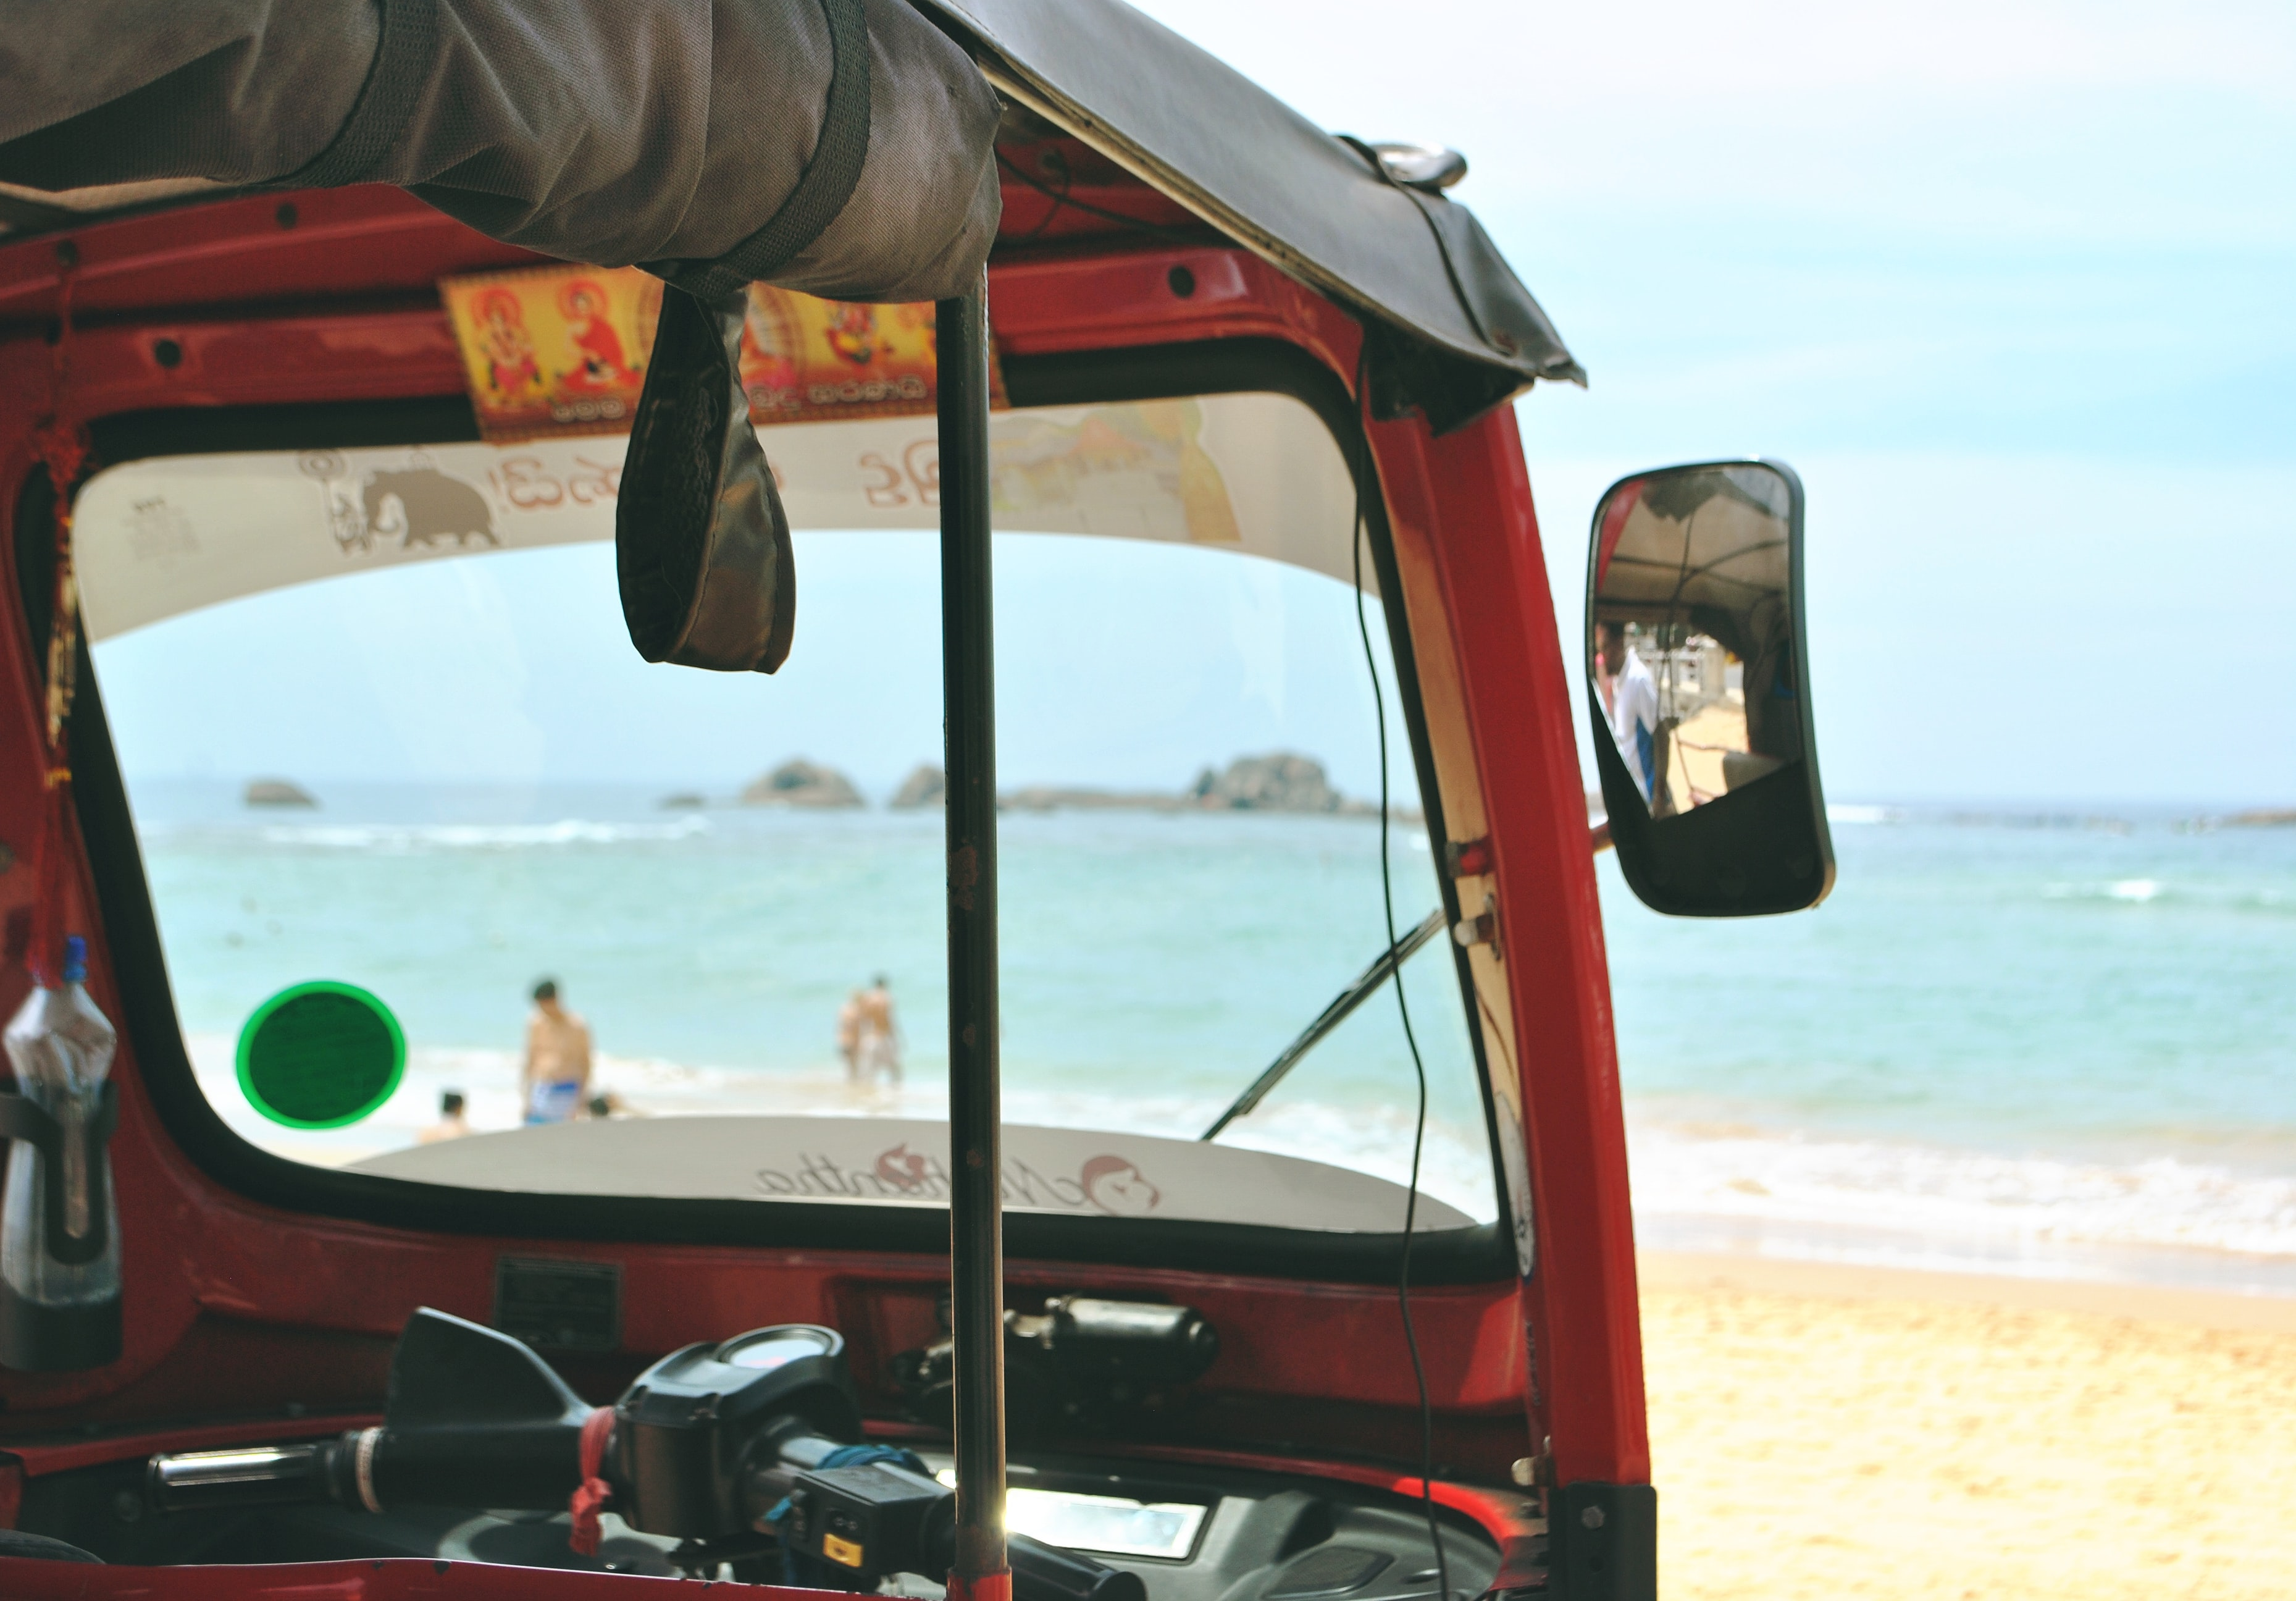 photo of red auto-rickshaw facing sea